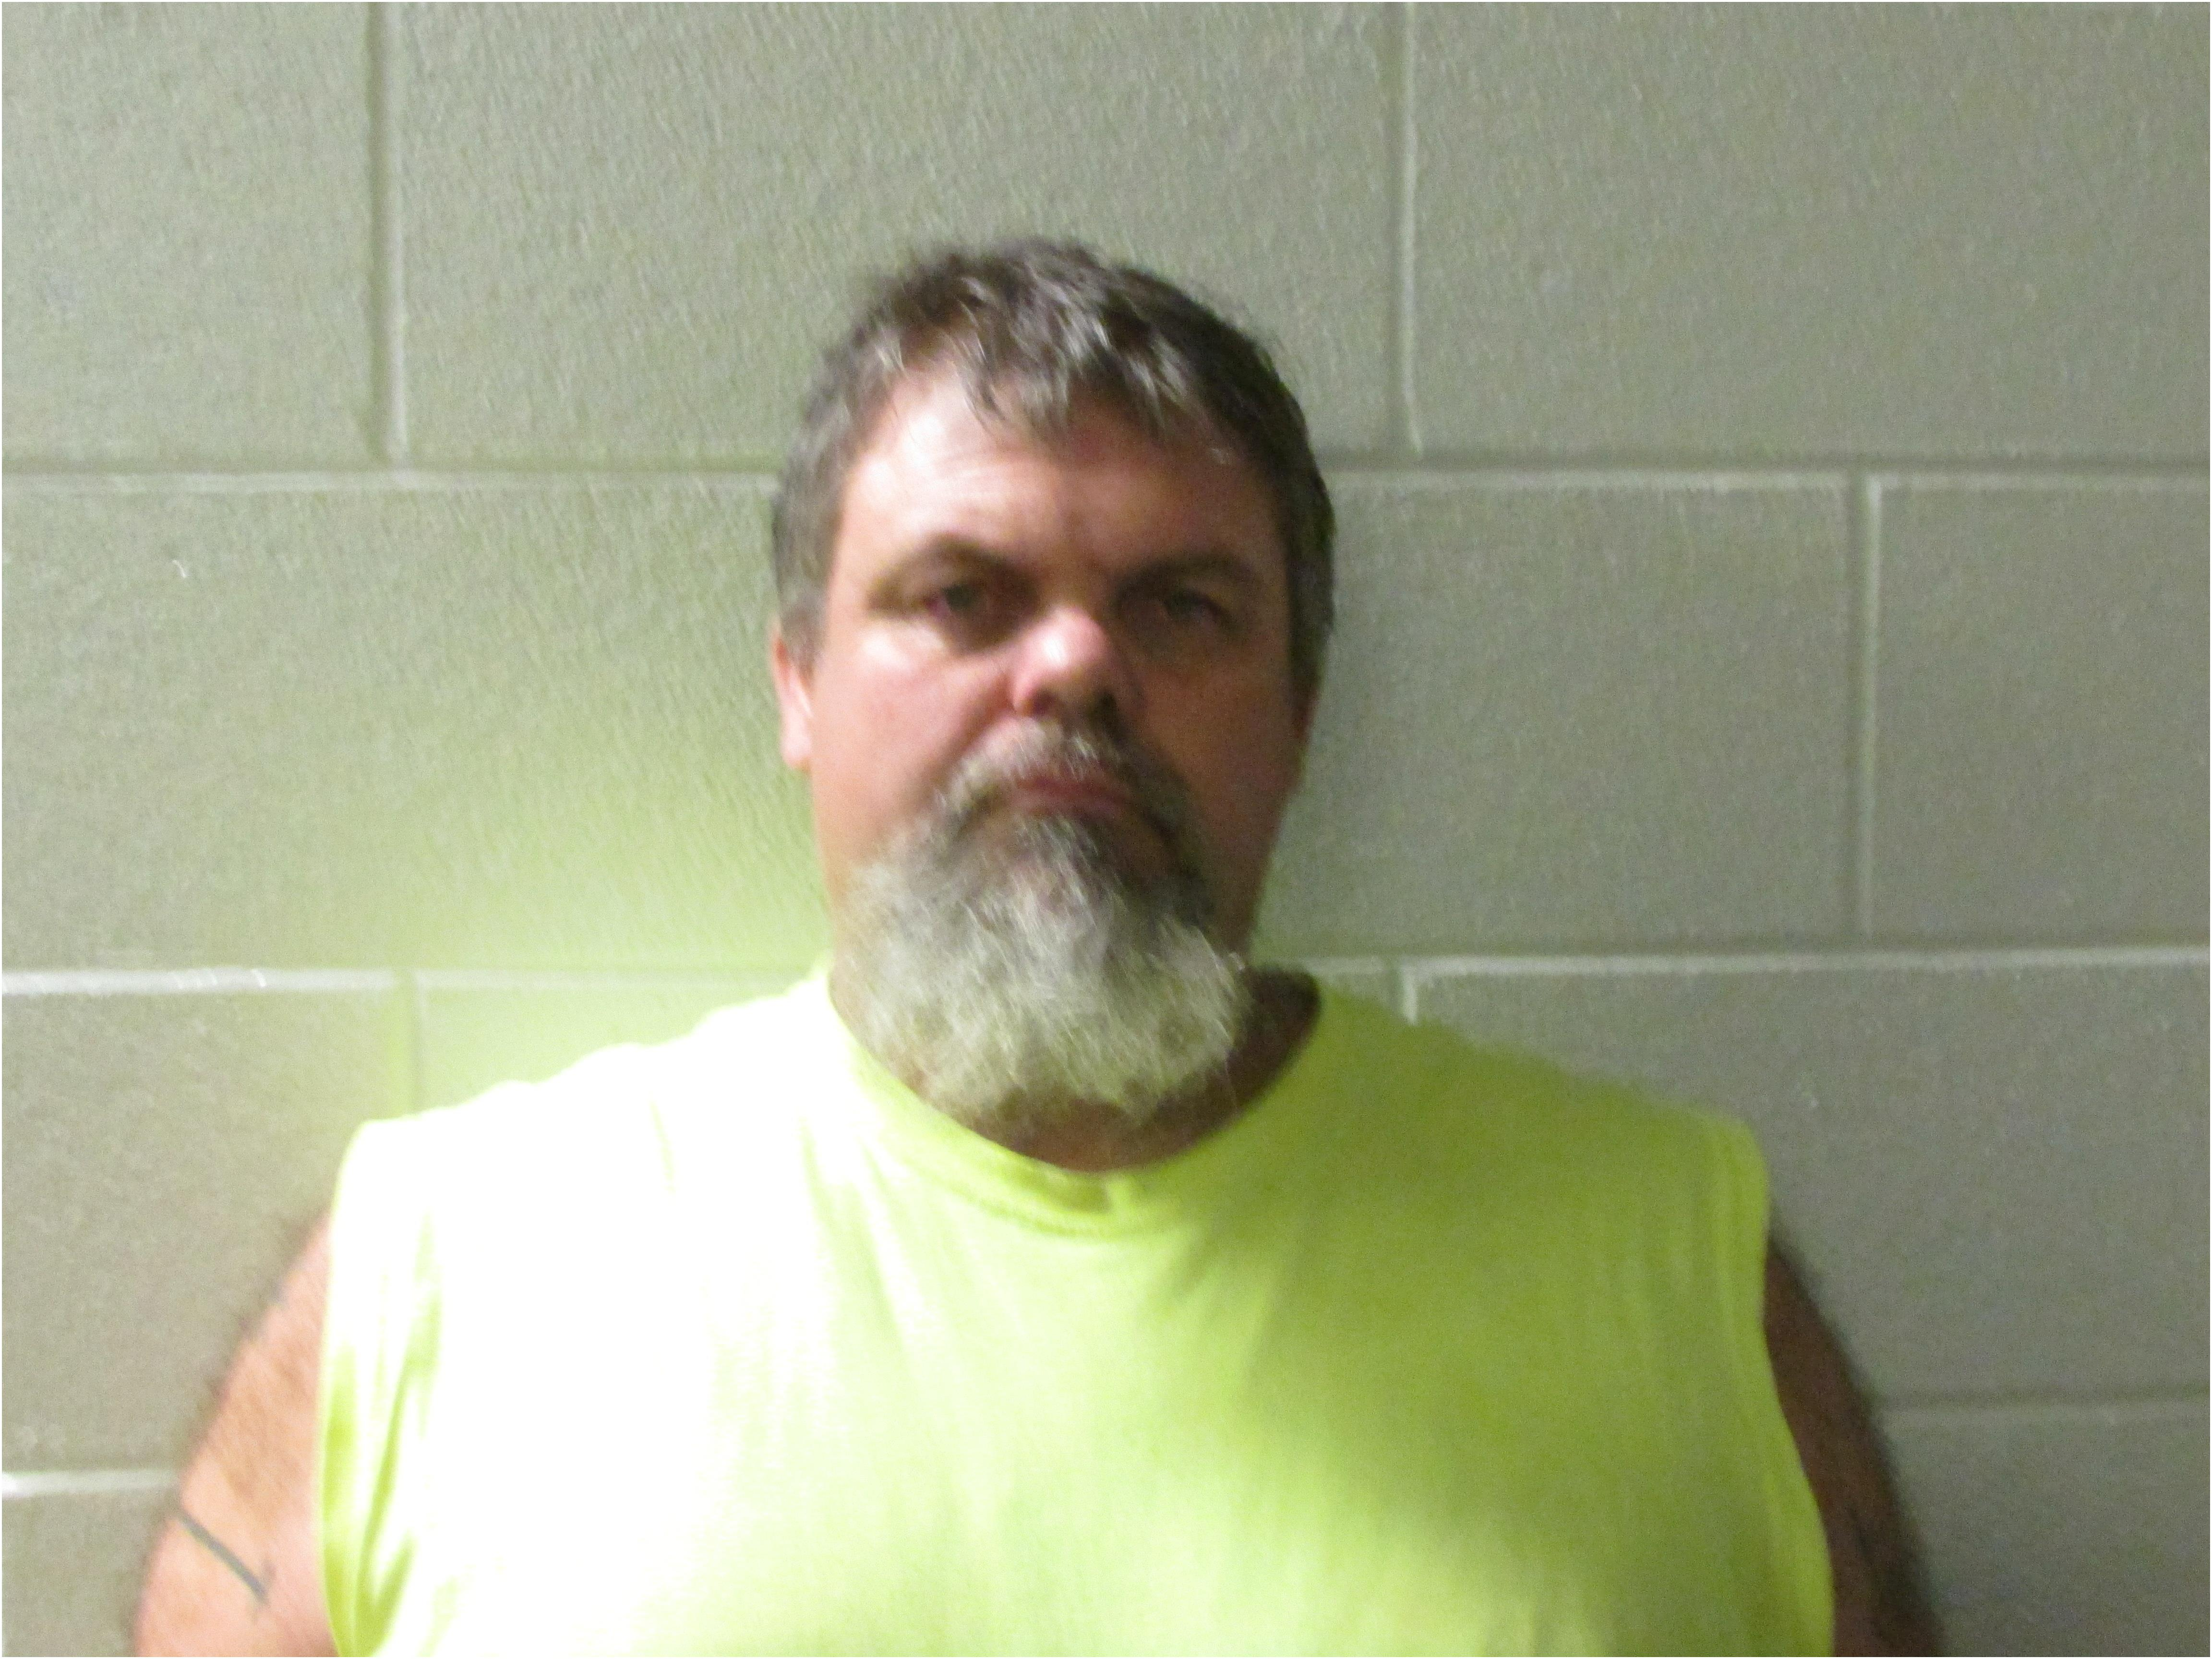 sex offenders of henderson county nc